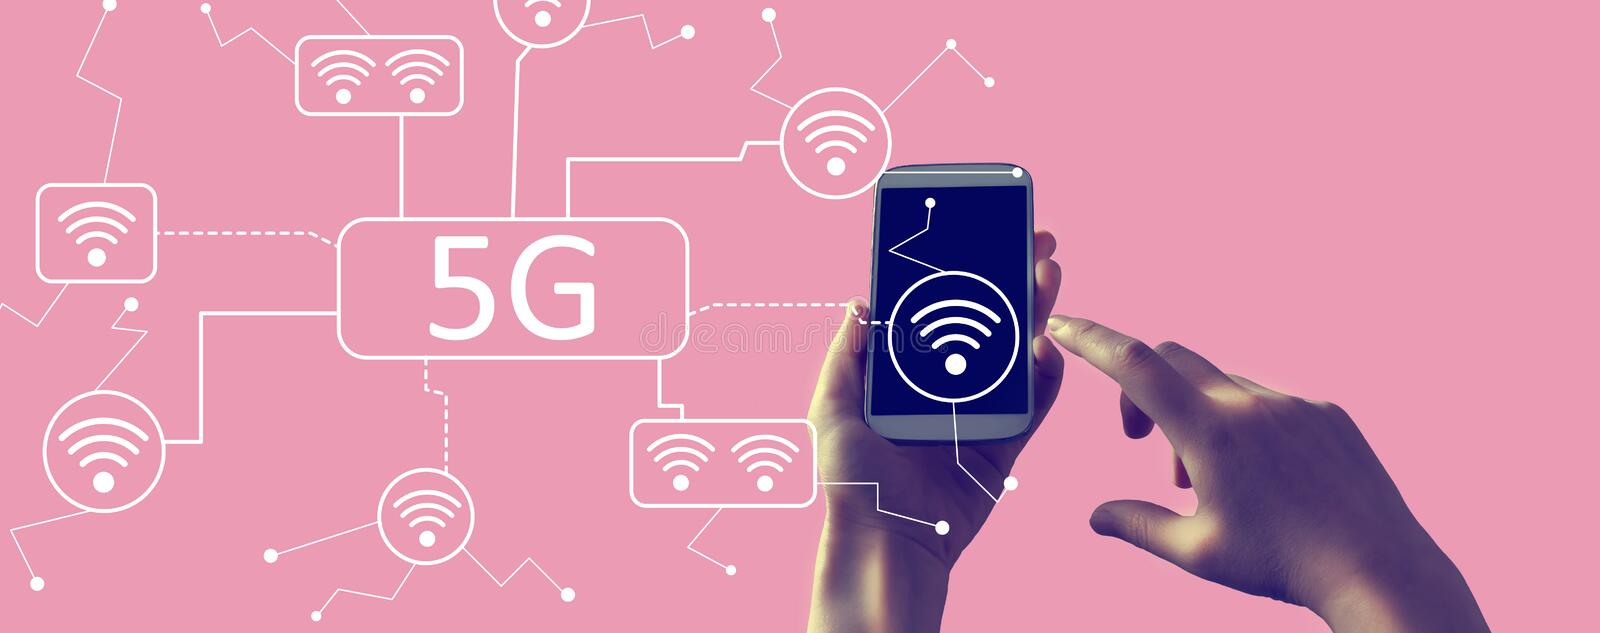 5G network with smartphone royalty free illustration